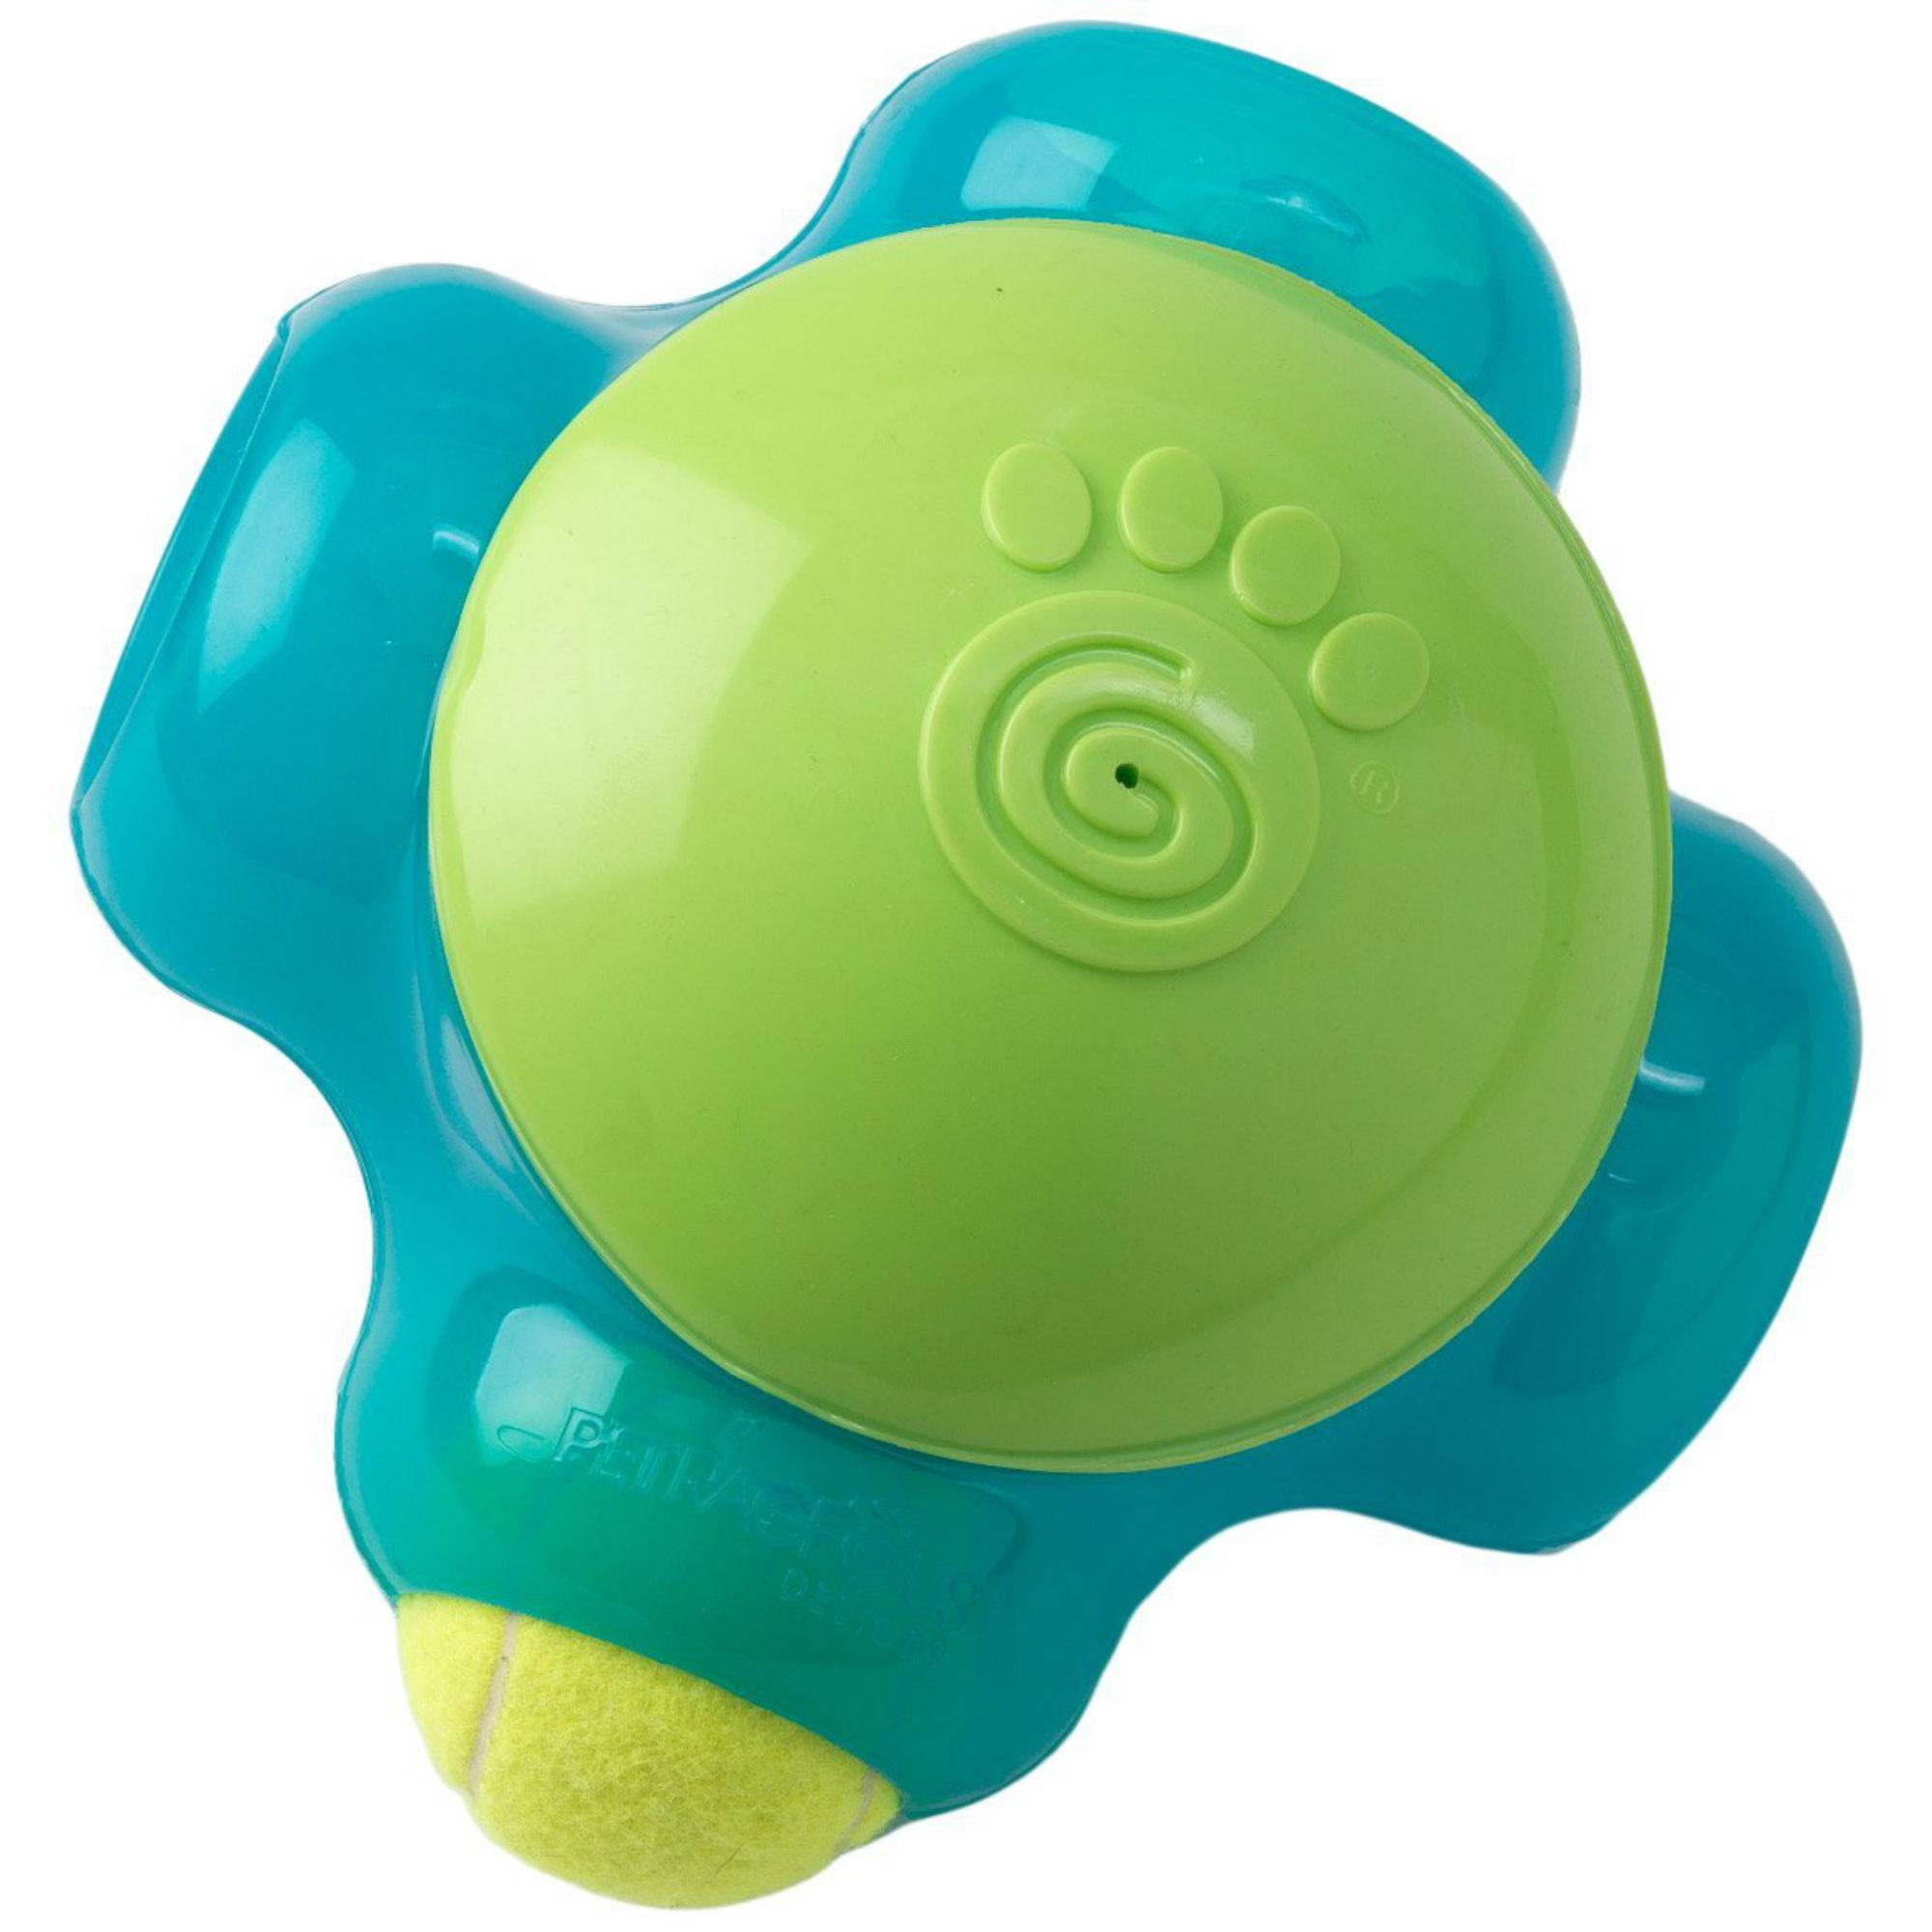 ThinkRageous Chaser-X Dog Ball Maze - Aqua/Lime Green